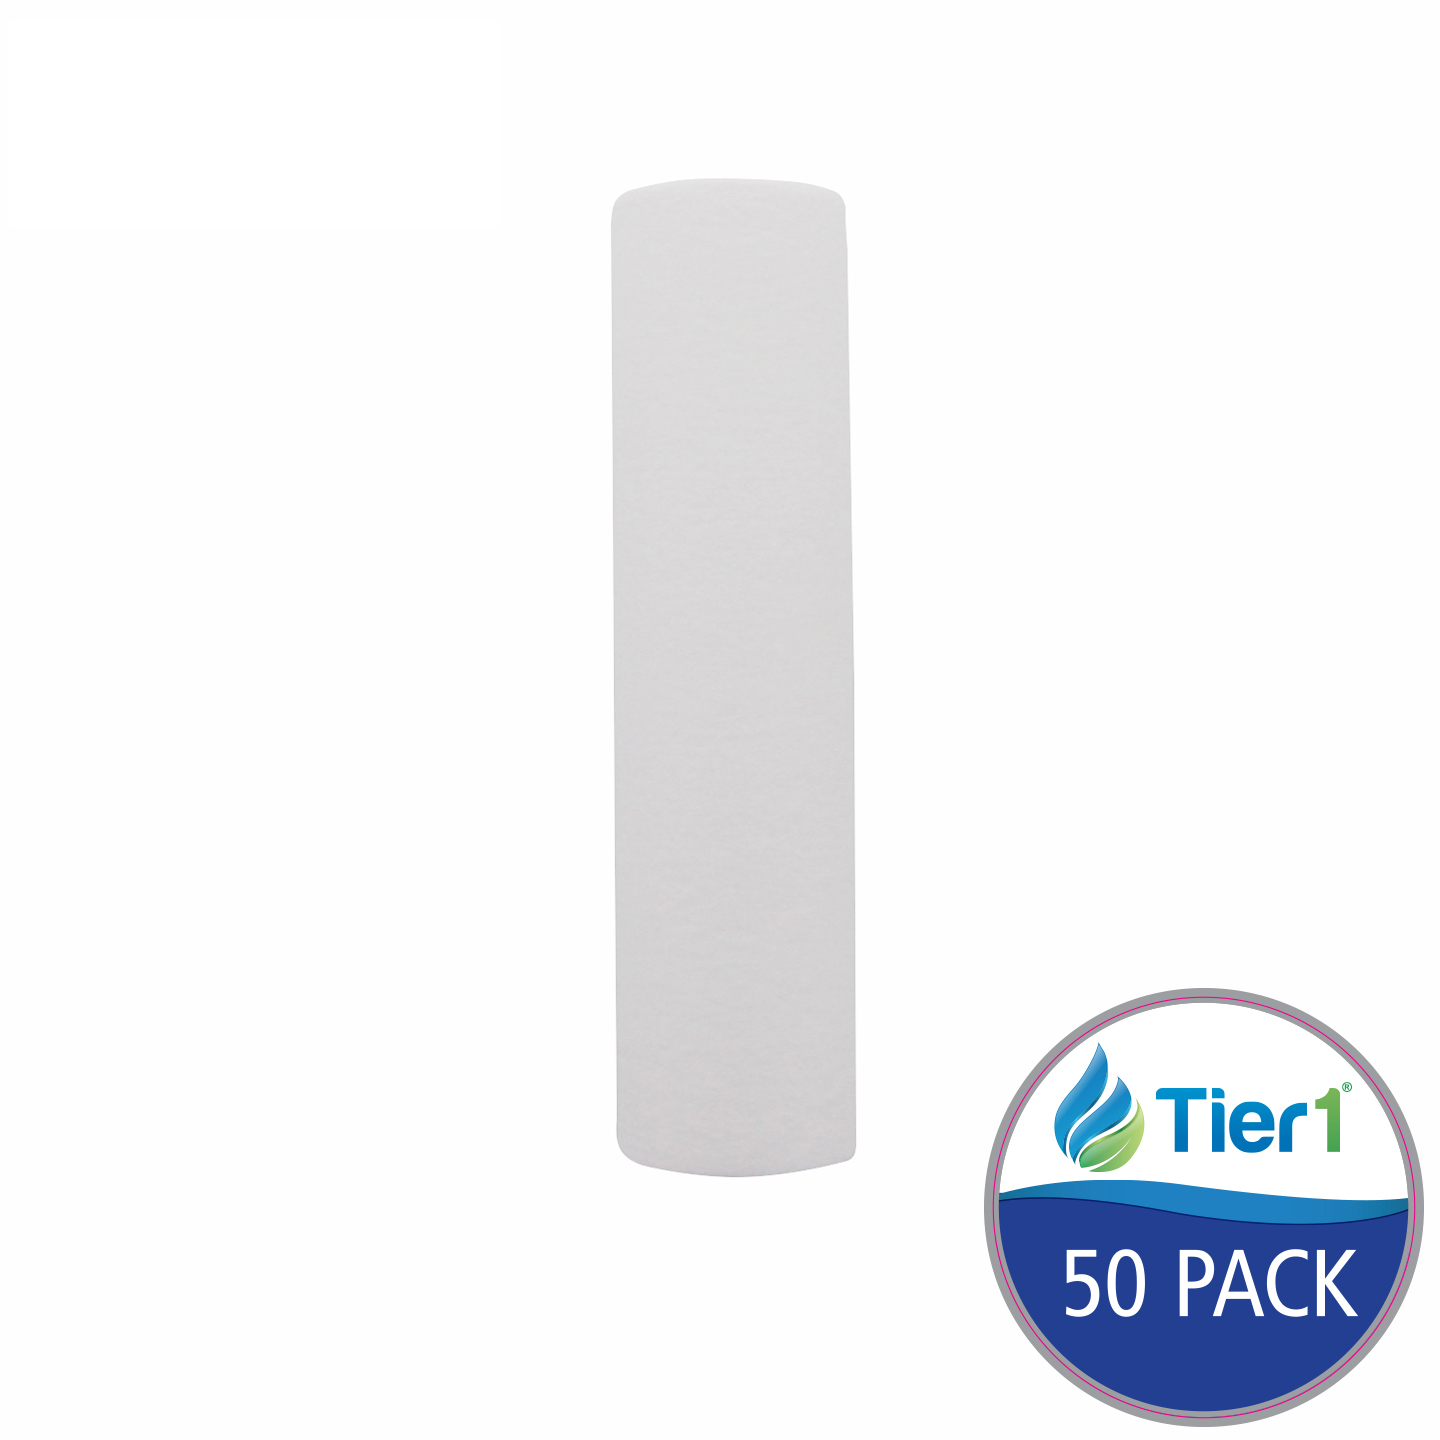 10 X 2.5 Spun Wound Polypropylene Replacement Filter by Tier1 (10 micron) (50-Pack) TIER1_P10_10_50_PACK